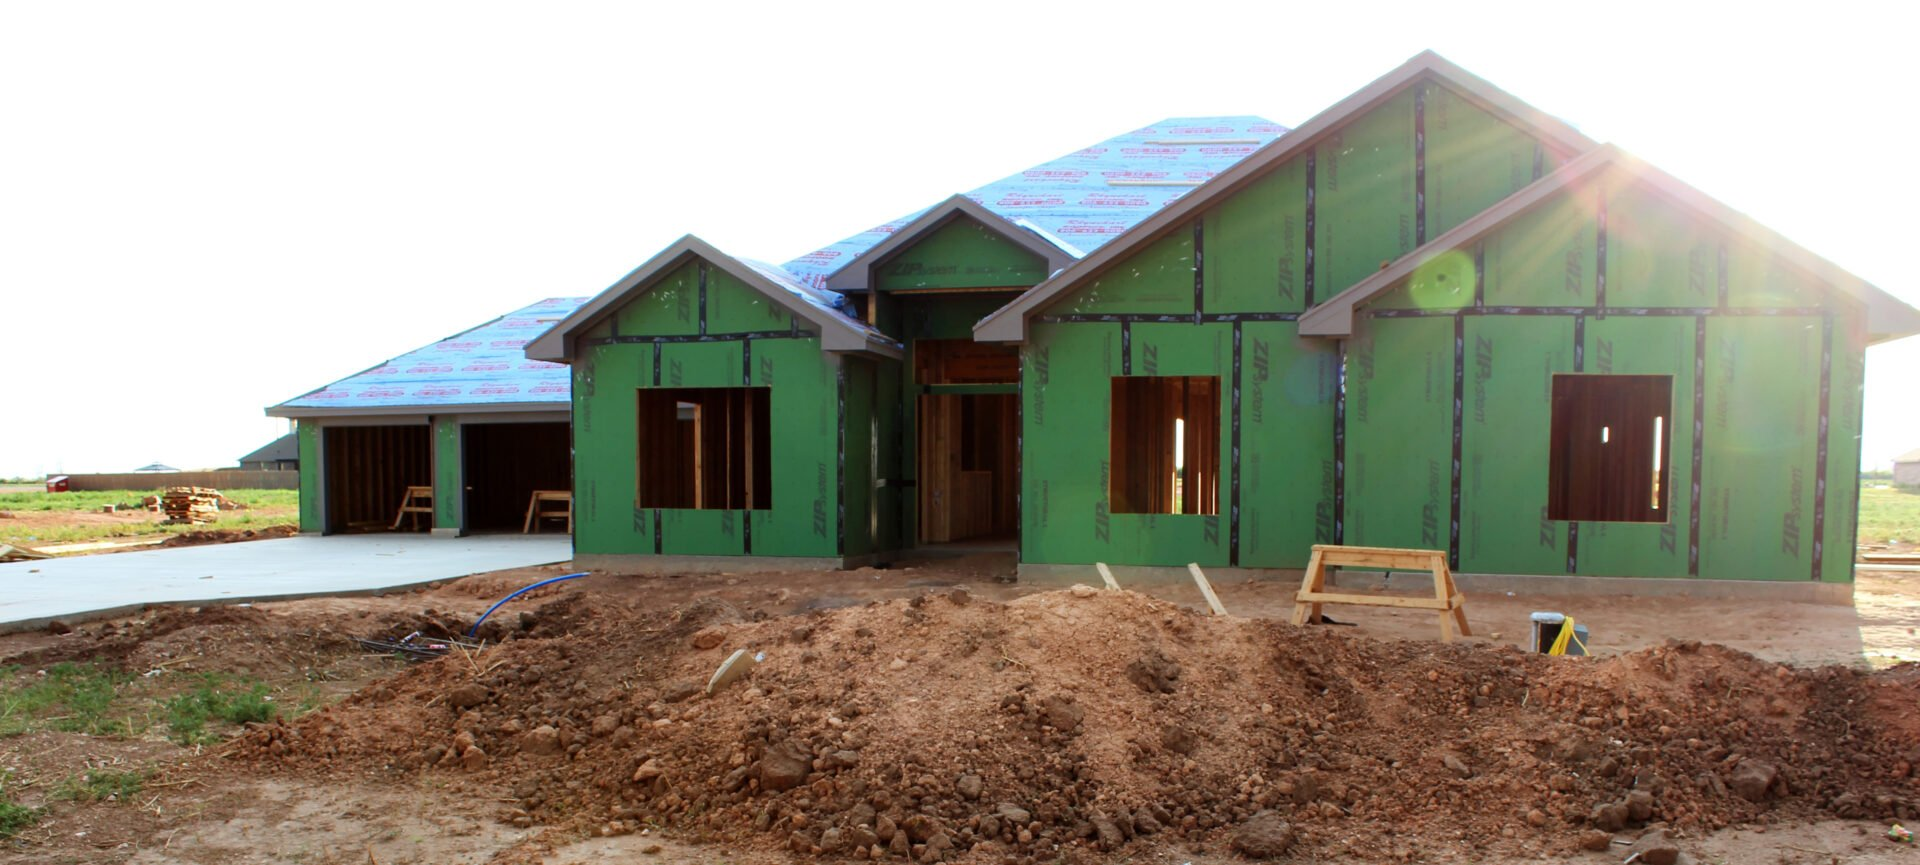 Costs Associated With Building and Financing a New Home